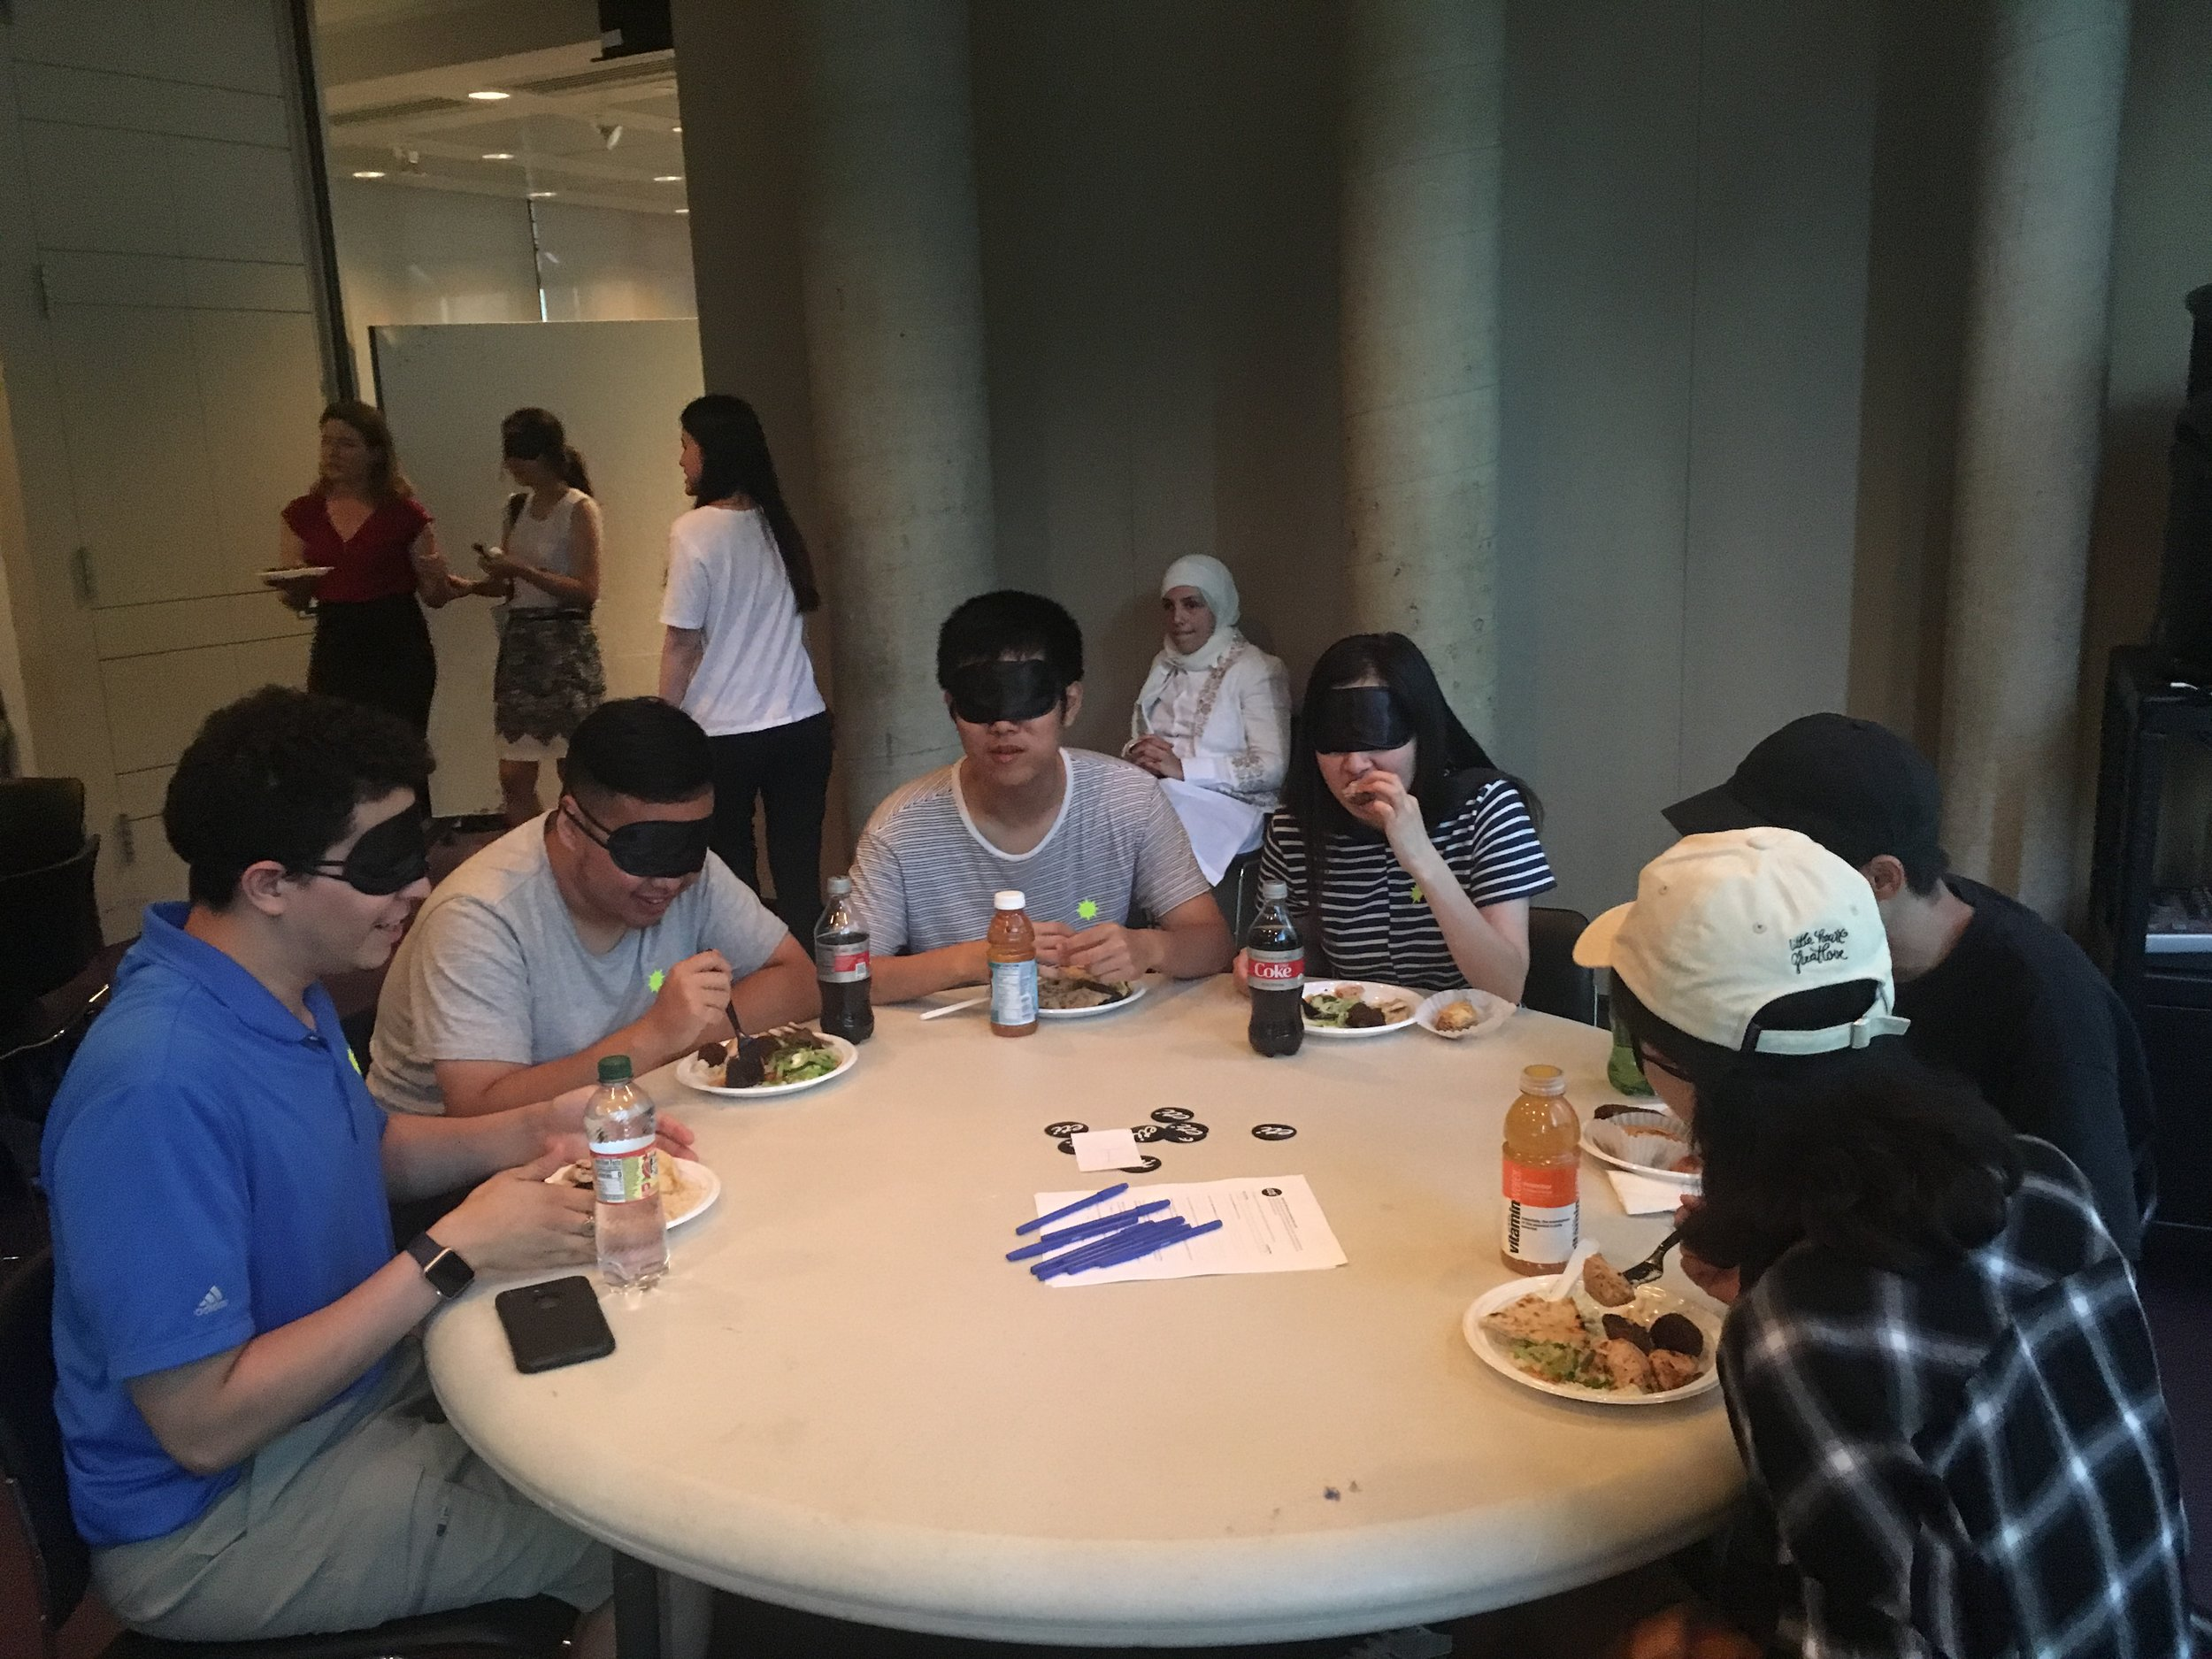 Six participants sit around a round table, eating and making conversation. In the background, a sighted guide leads a blindfolded participant to their seat.